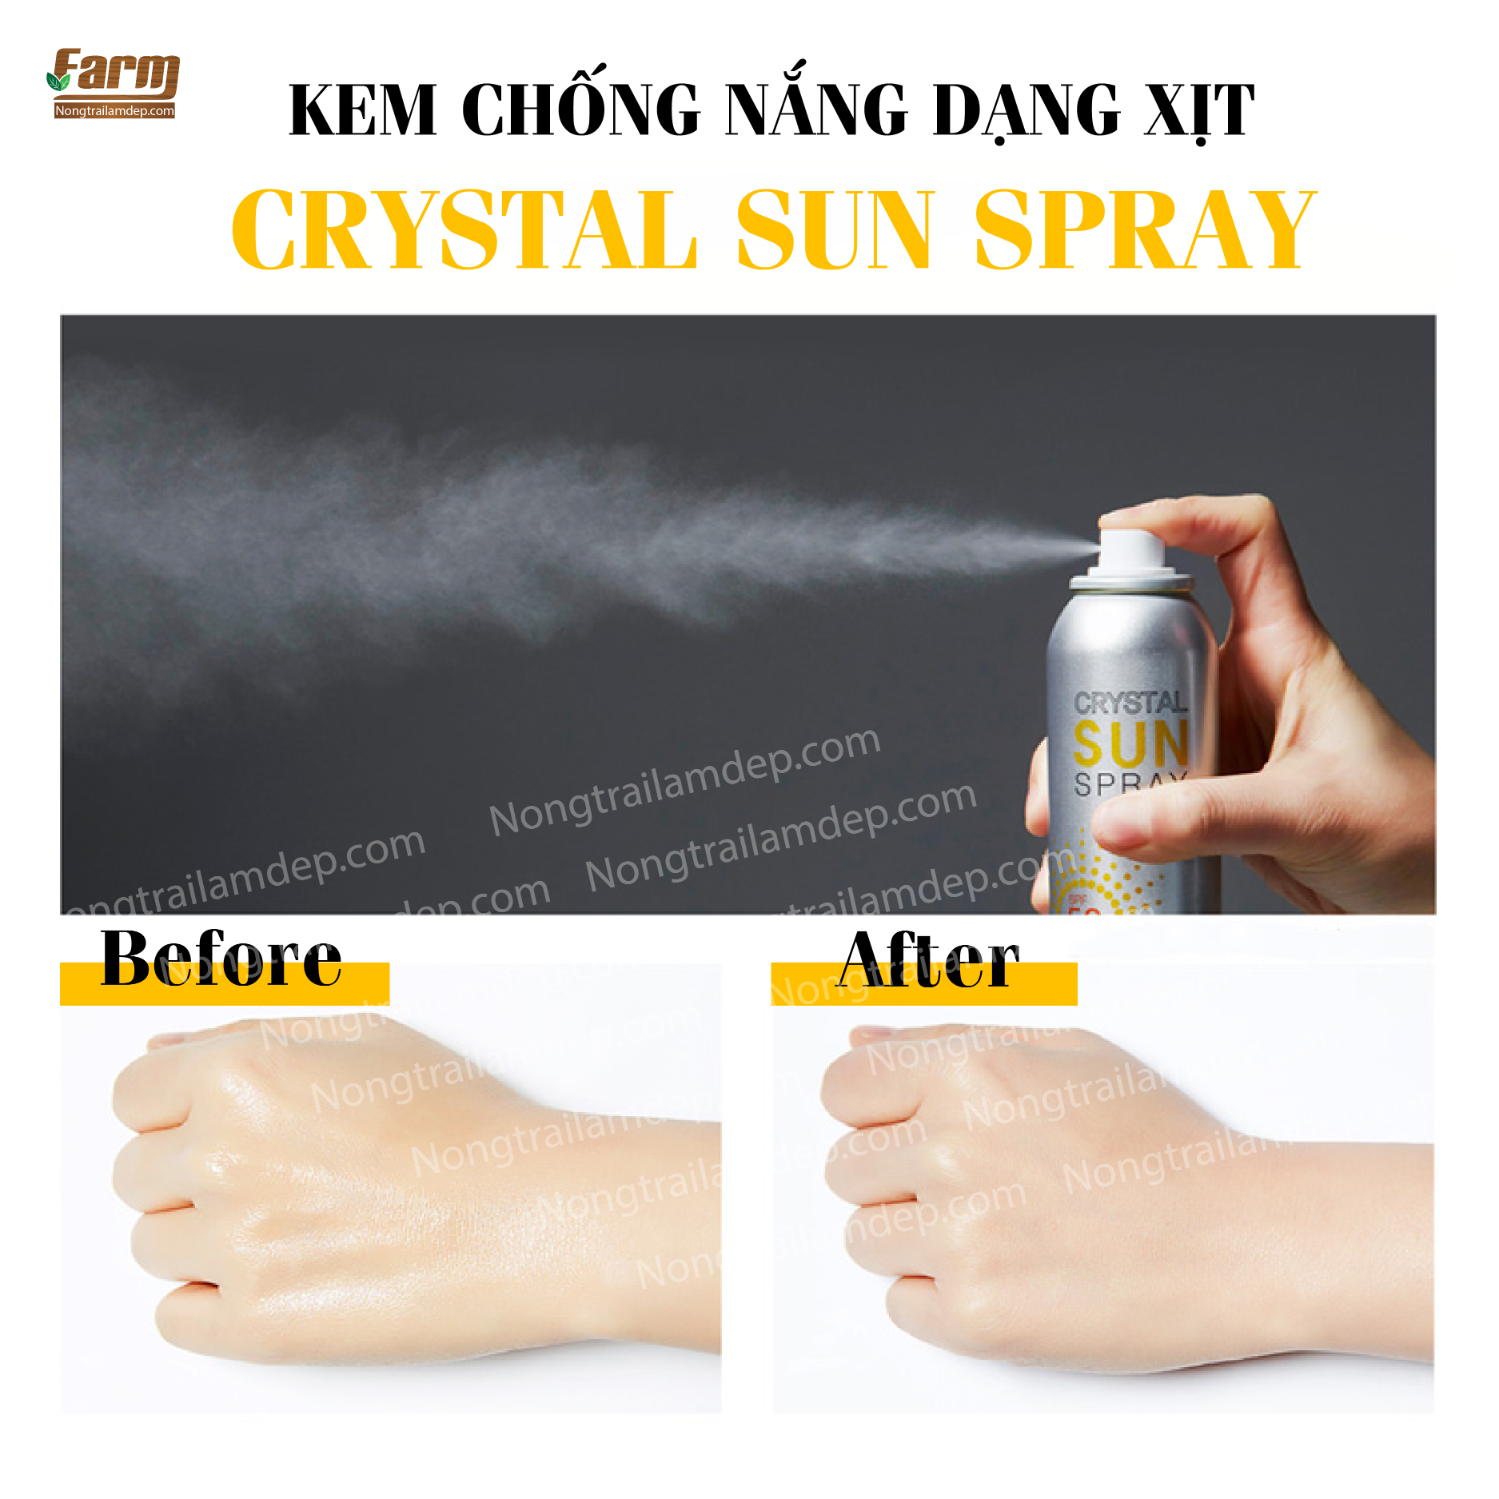 CRYSTAL SUN SPRAY 03